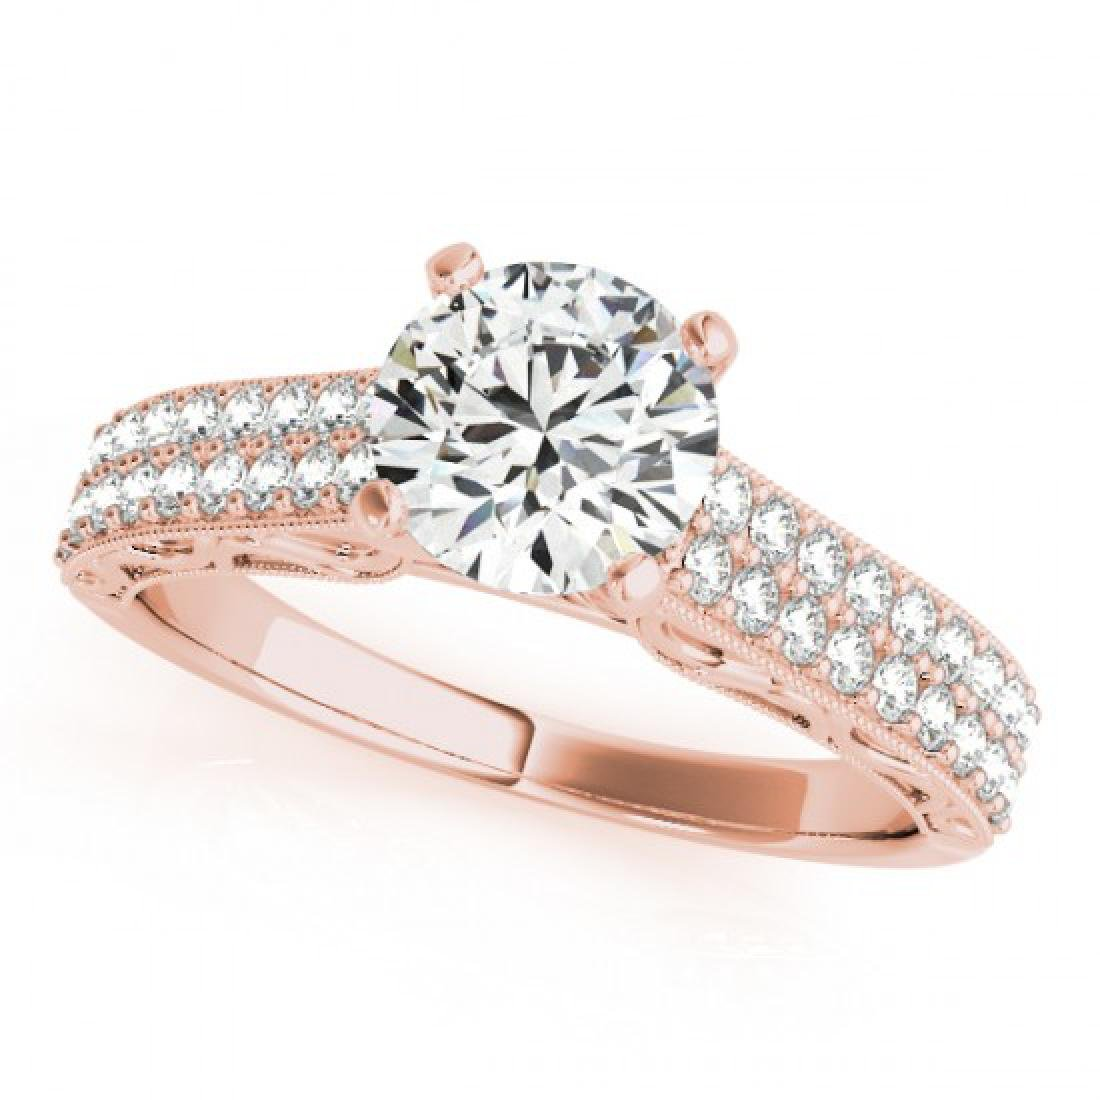 1.16 CTW Certified VS/SI Diamond Solitaire Antique Ring